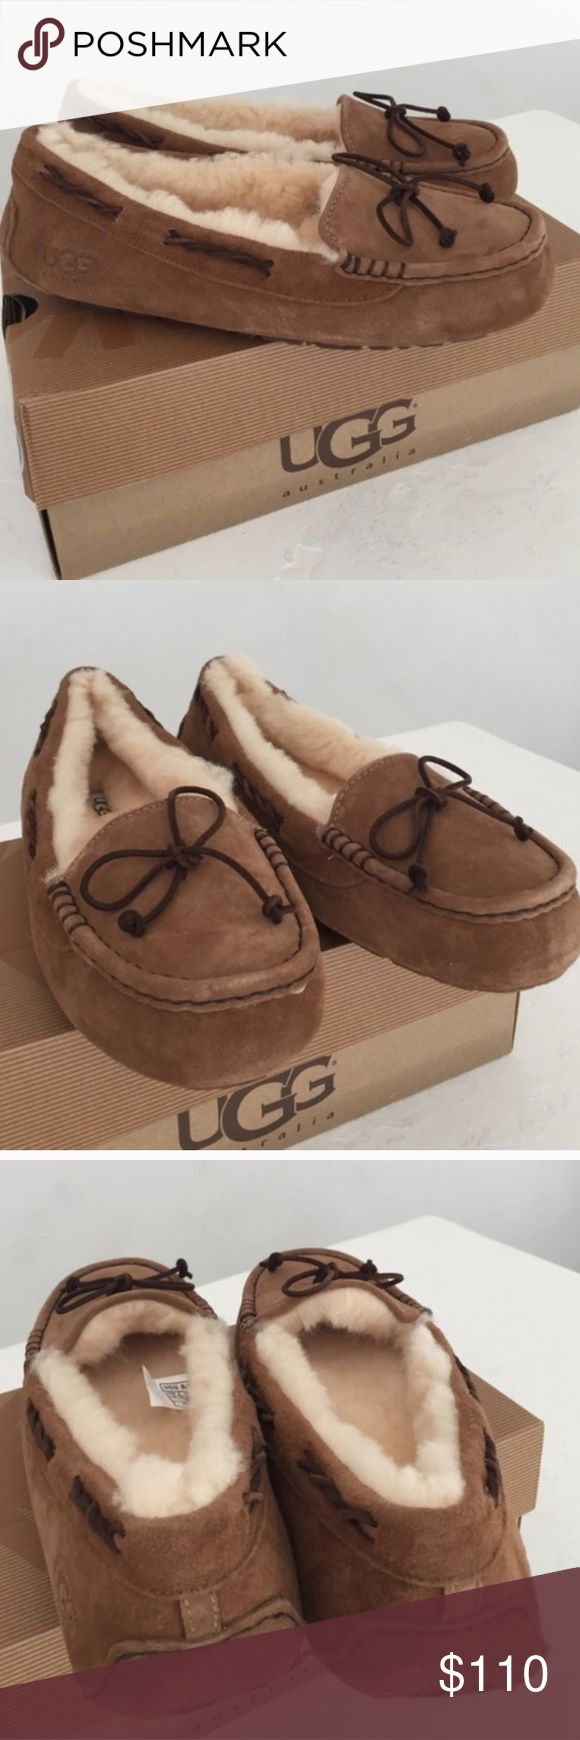 uggs australia mens slippers moccasin original ugg australia boots cheap